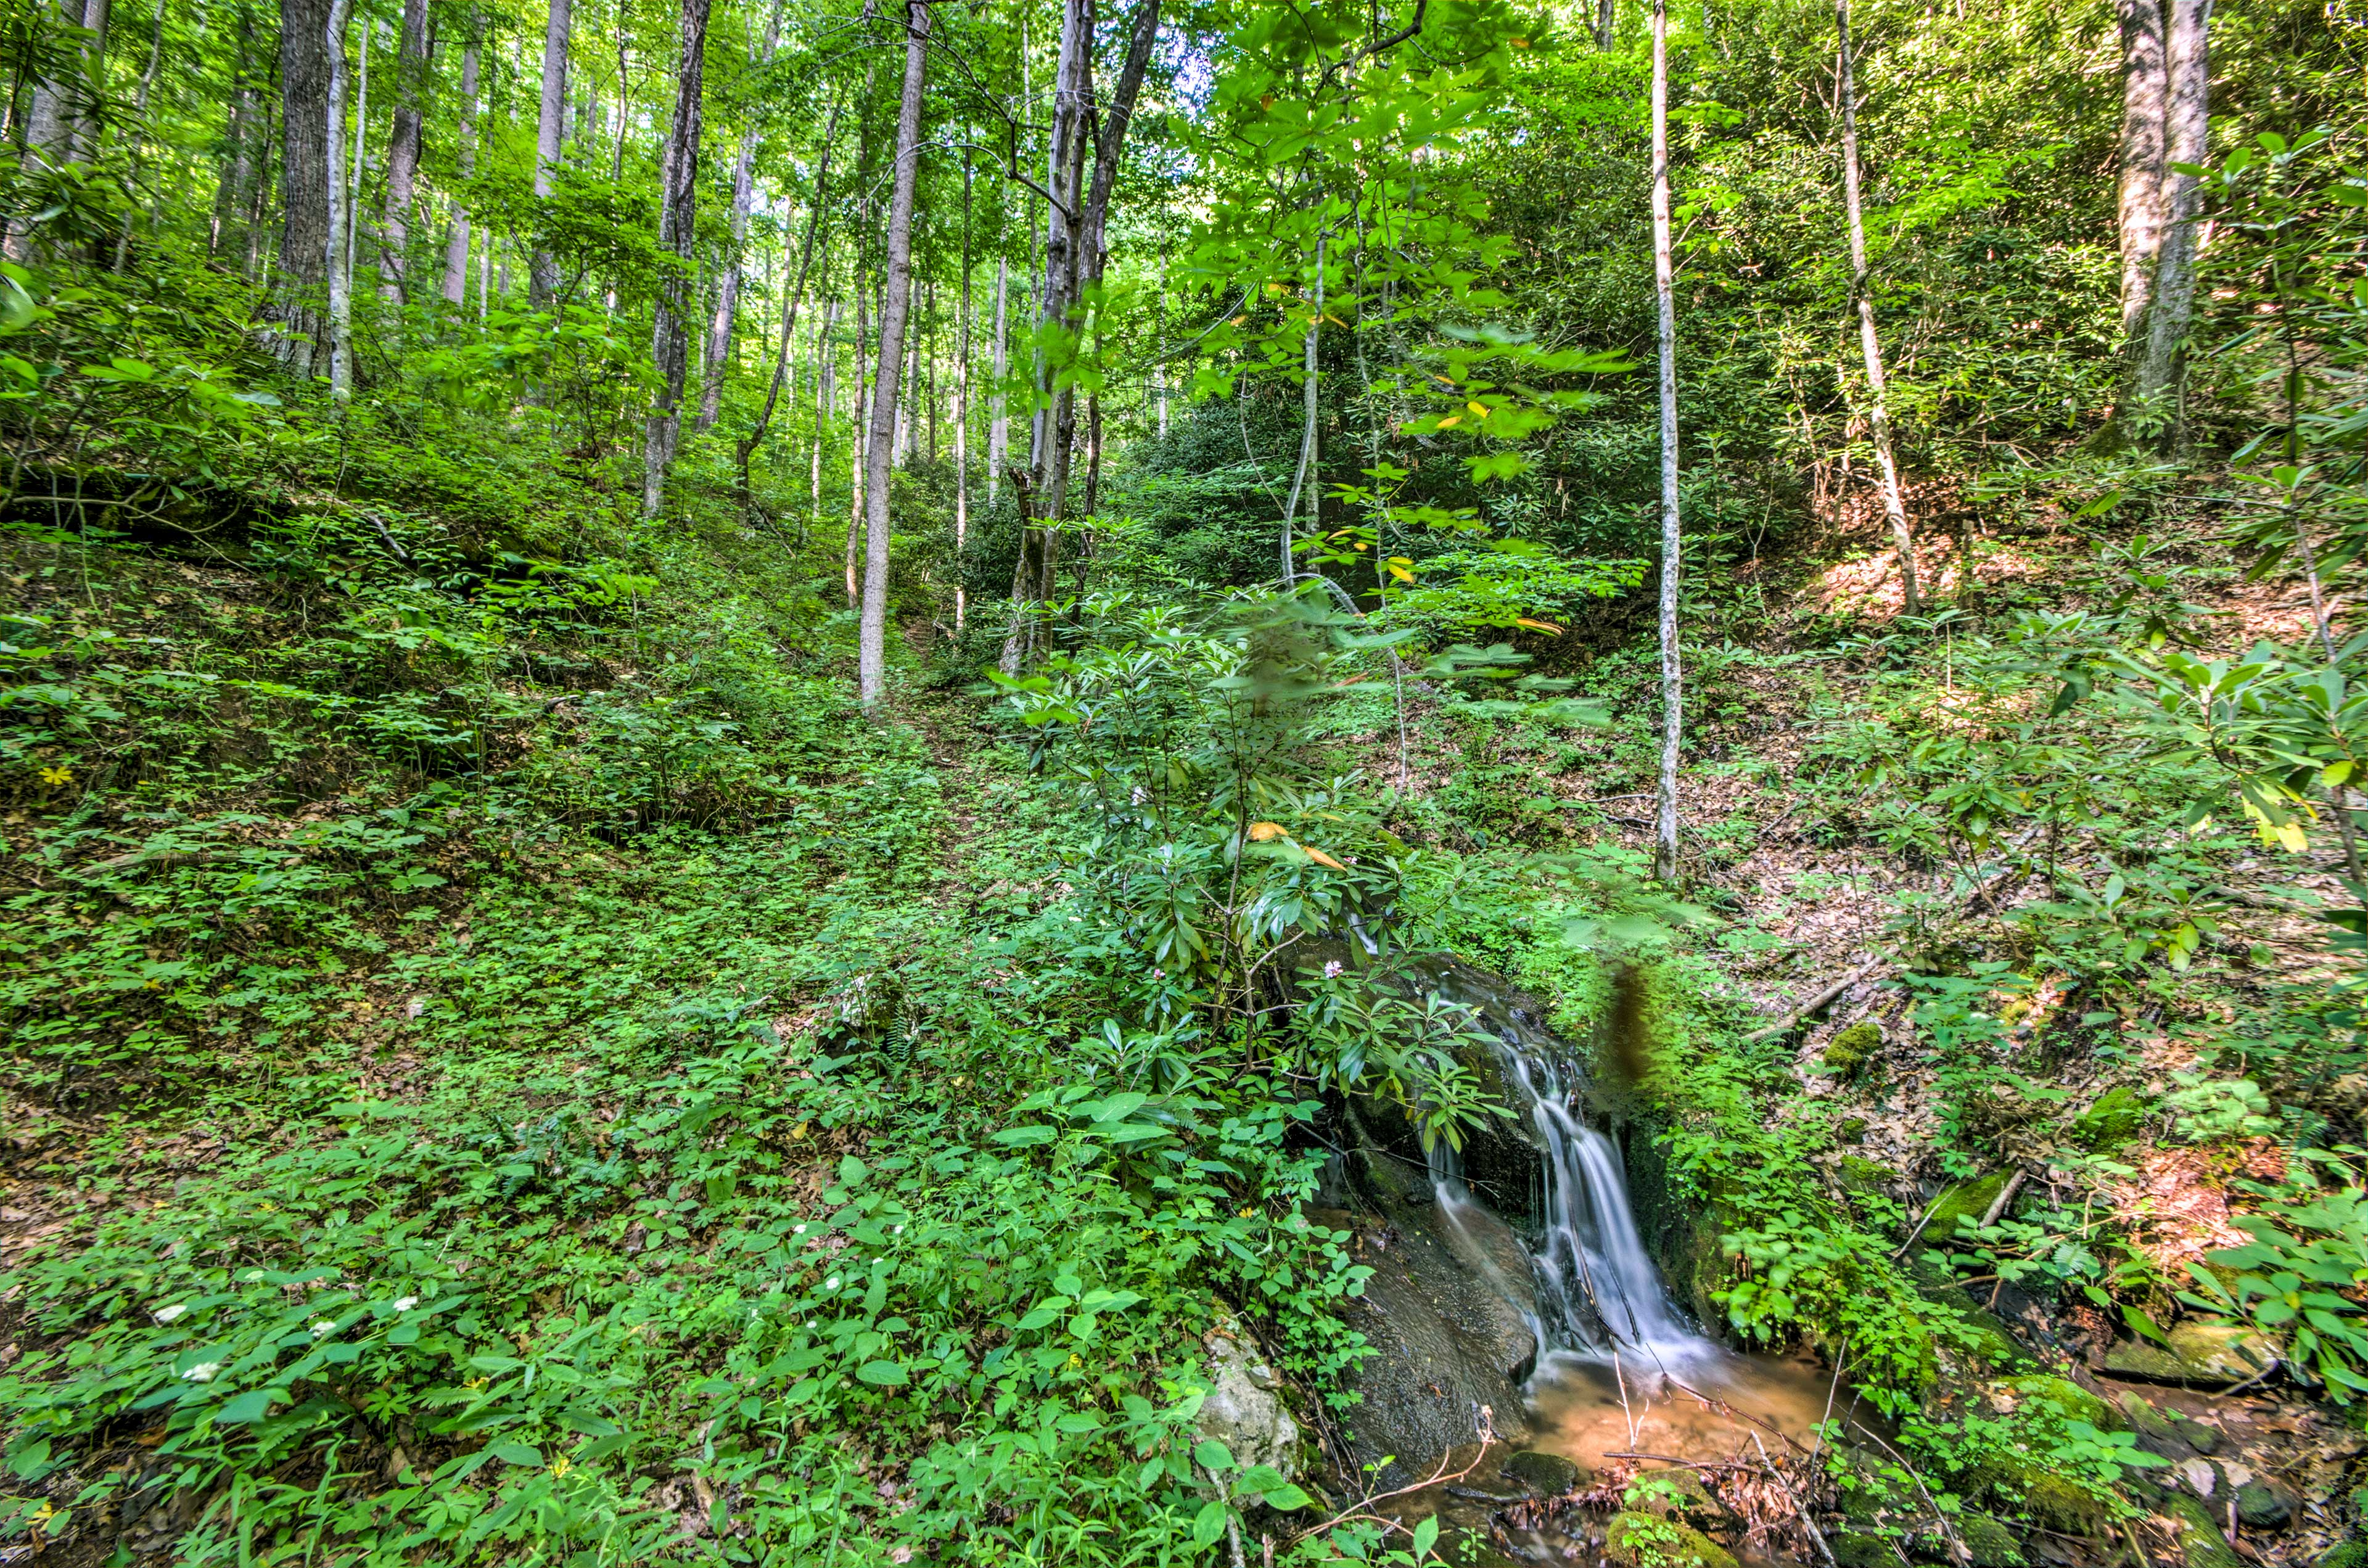 Become one with nature at this Smoky Mountain escape!